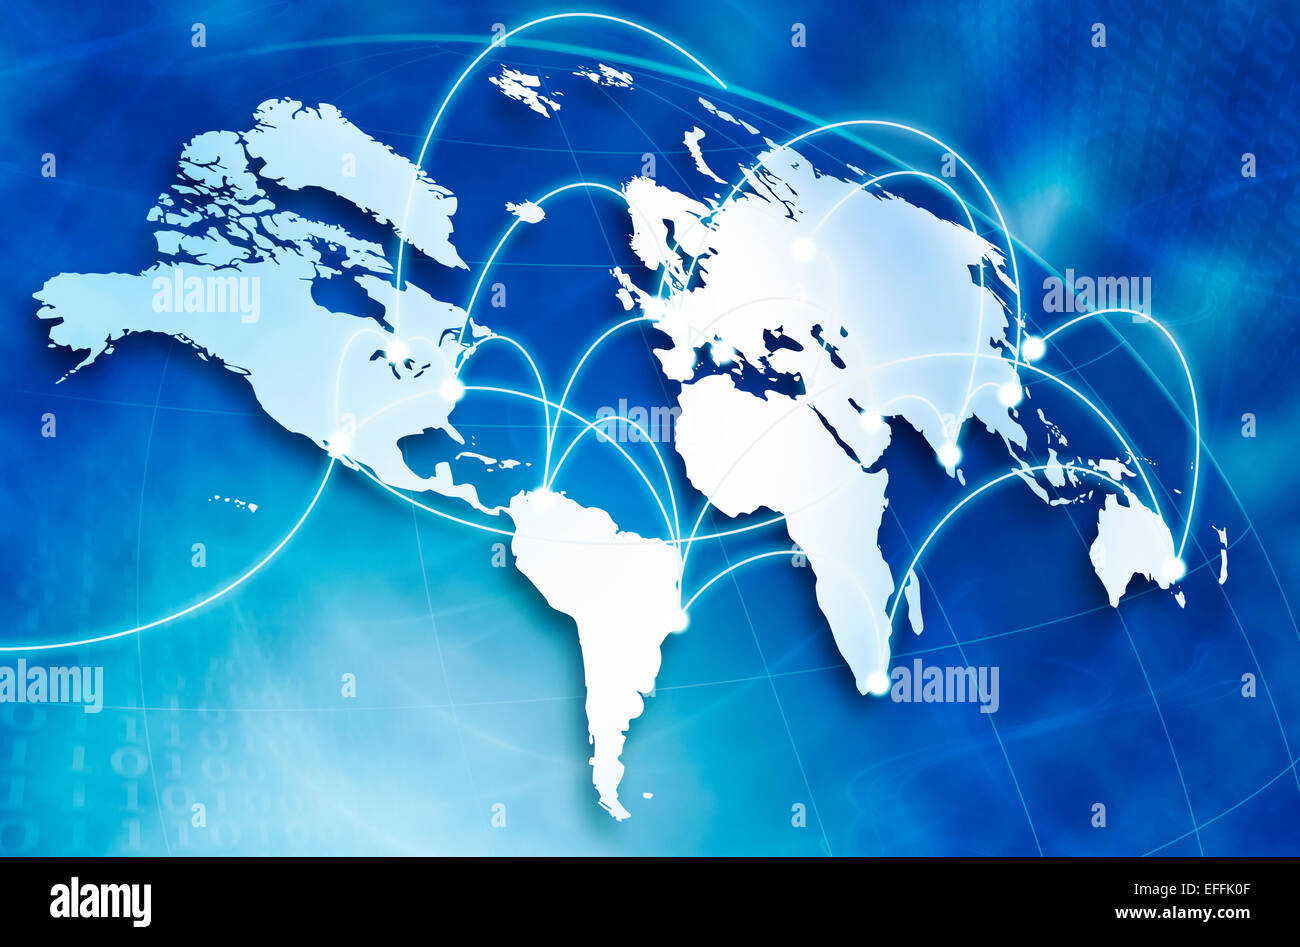 Global network concept - Stock Image